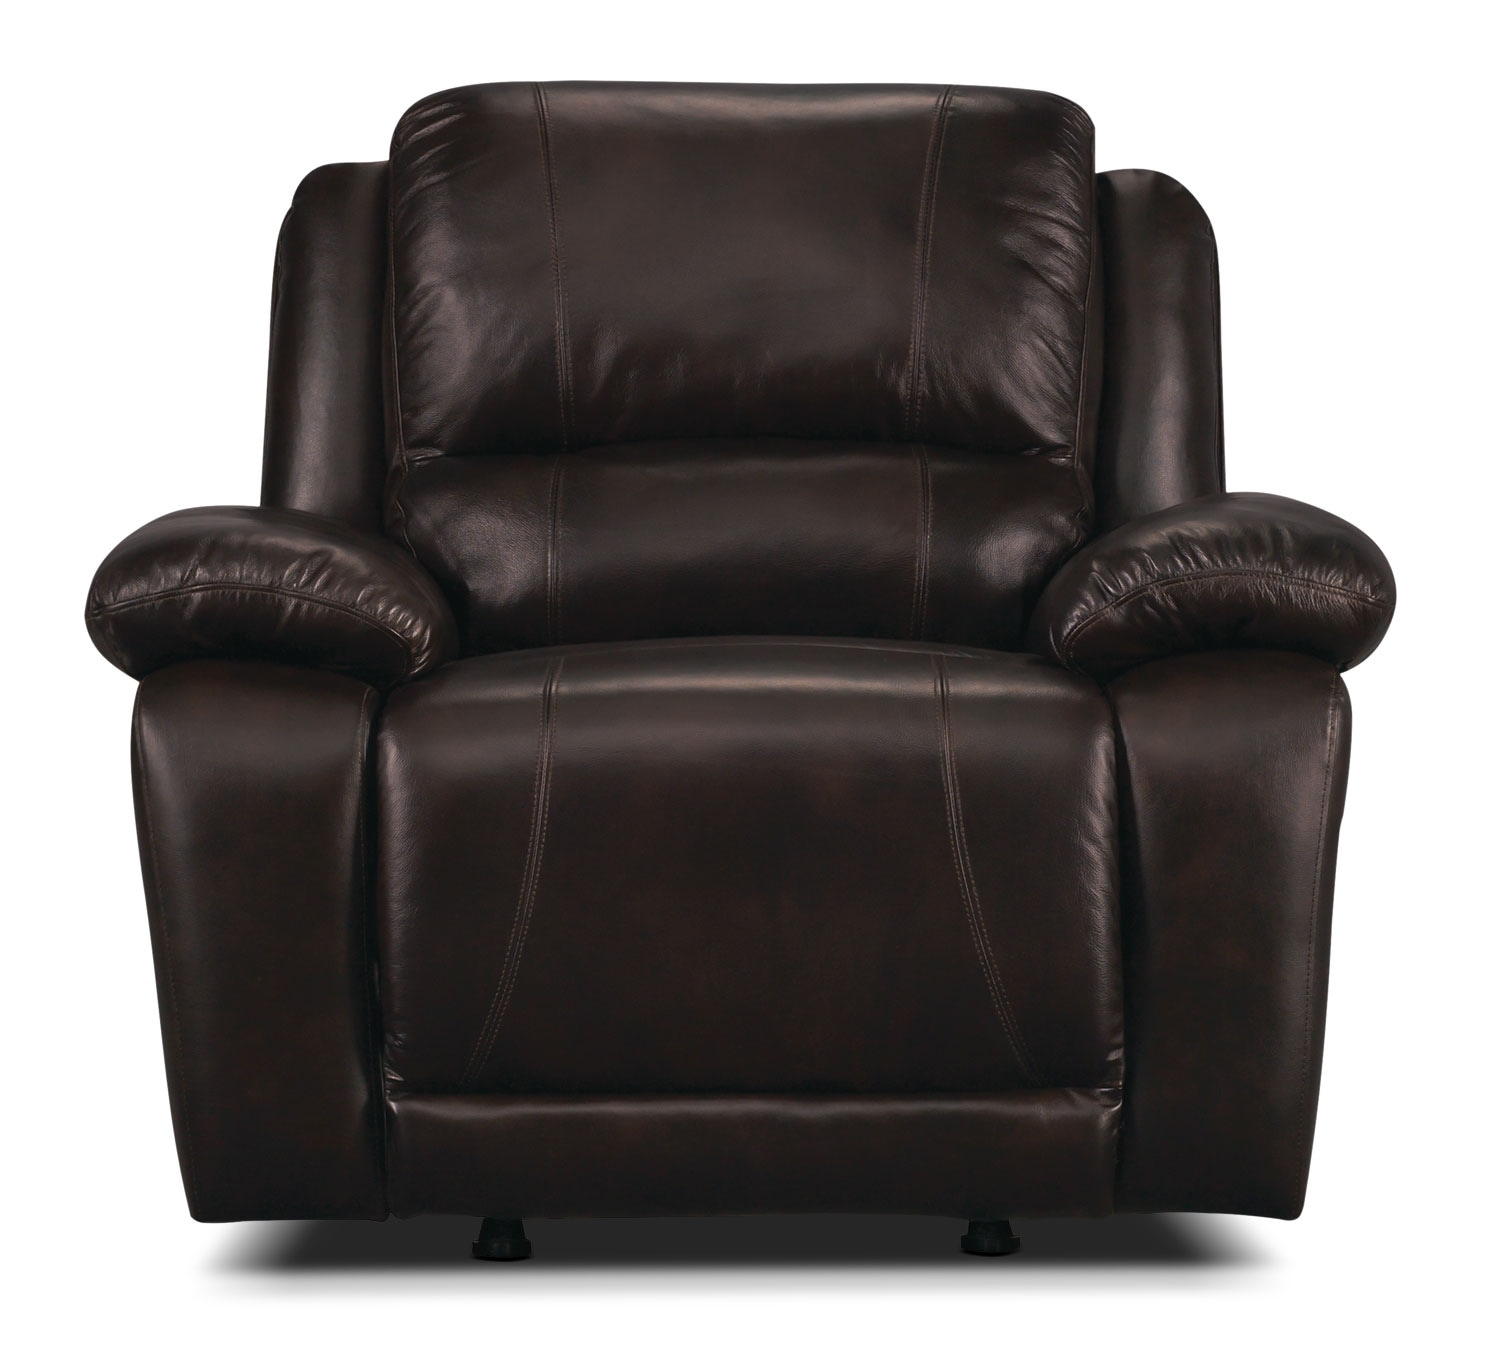 Marco Genuine Leather Rocker Reclining Chair - Chocolate